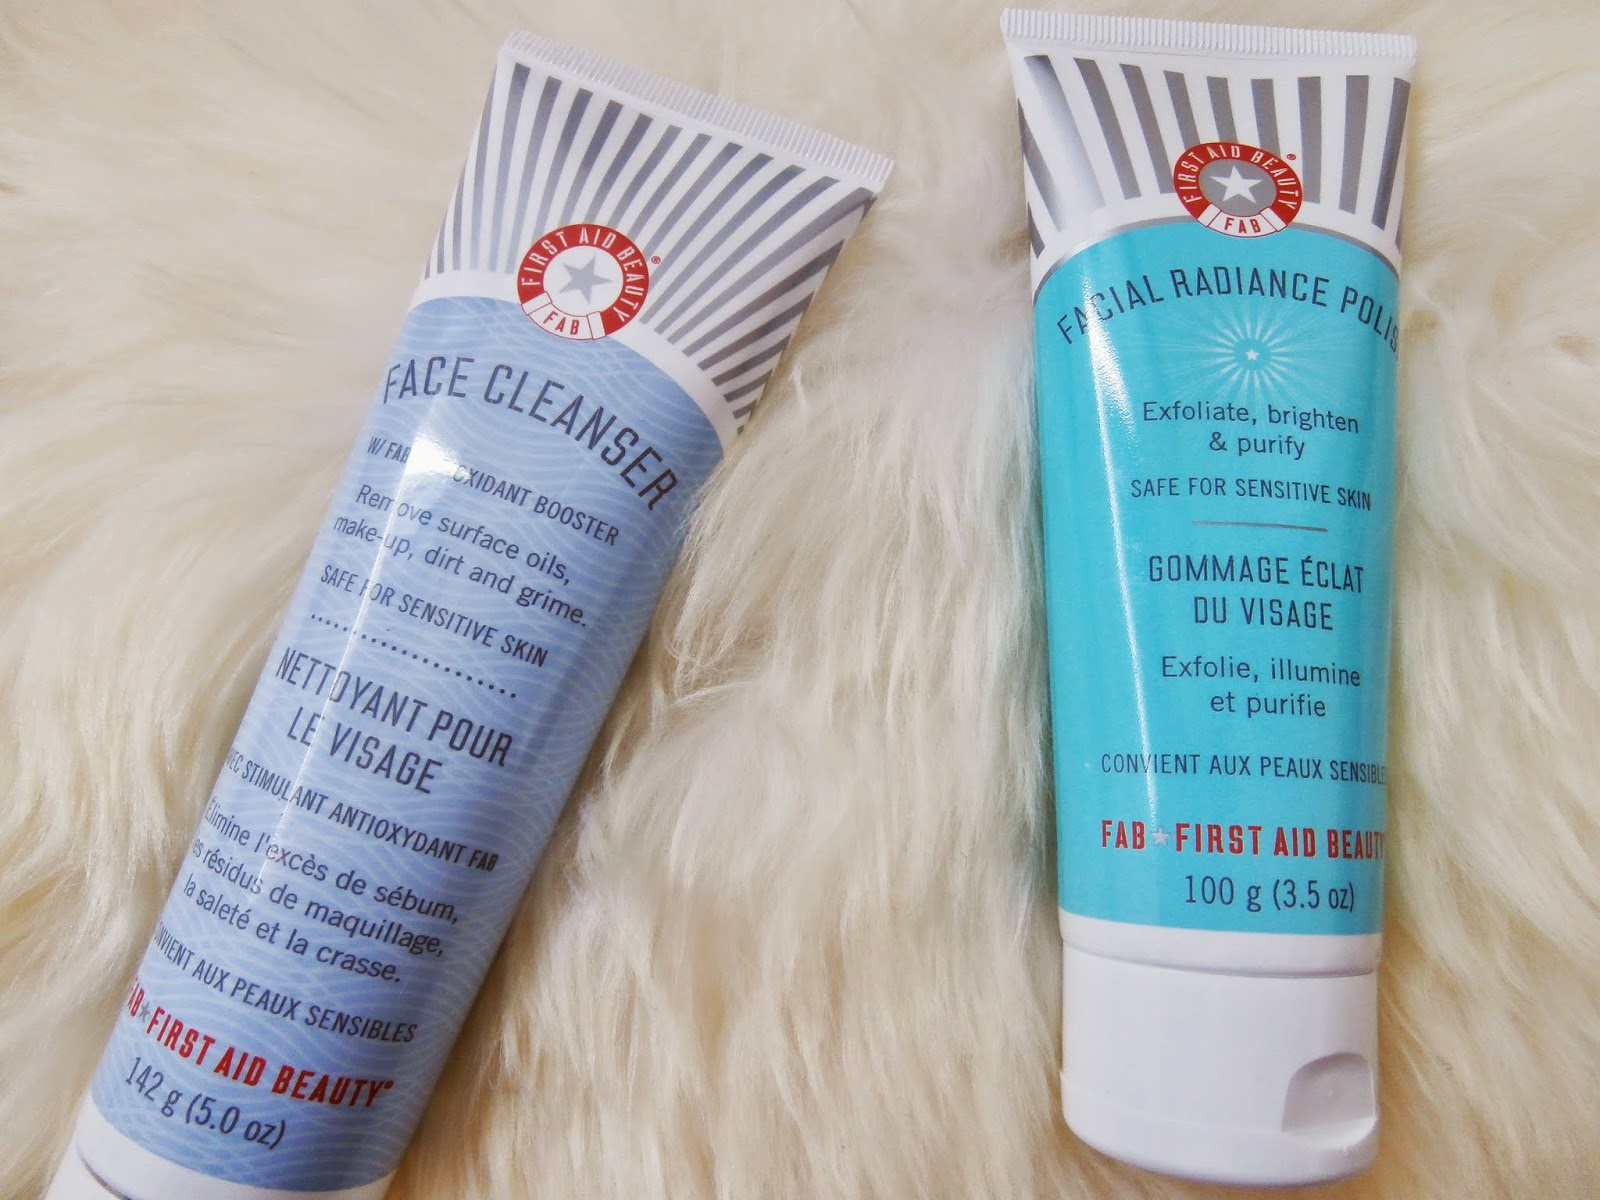 Miss Cocoblue First Aid Beauty Face Cleanser Facial Radiance Polish